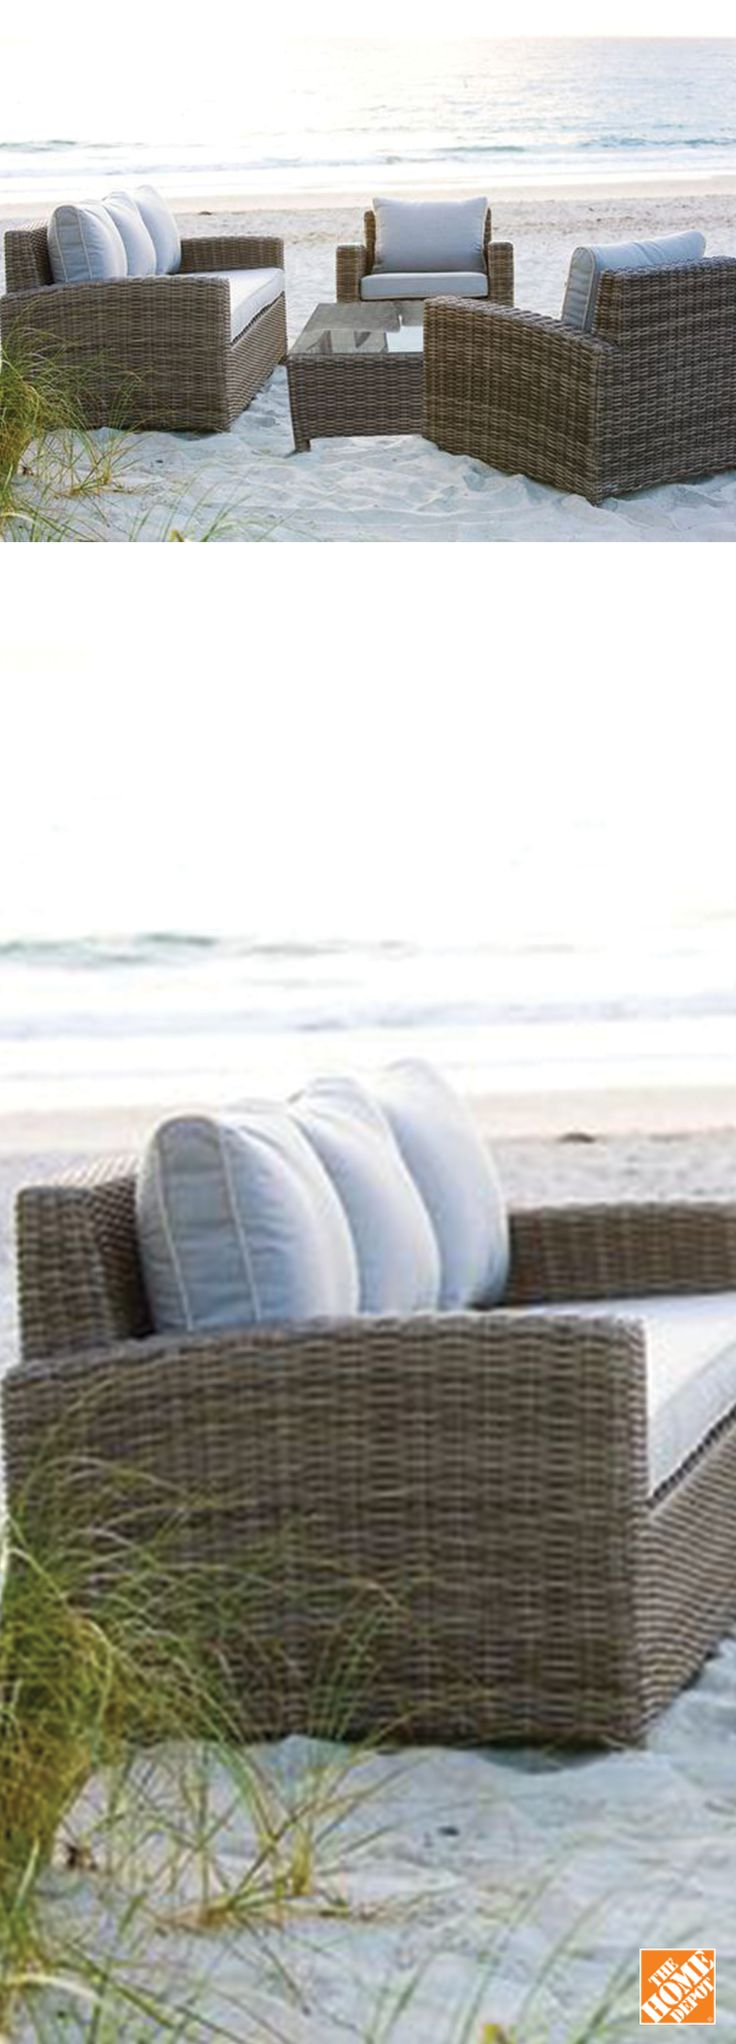 Made using all-weather resin wicker and weather resistant cushions, this design driven collection includes a fully woven glass top coffee table, two lounge chairs and one triple sofa. Shop now at HomeDepot.ca: http://hdepot.ca/2oYBujr